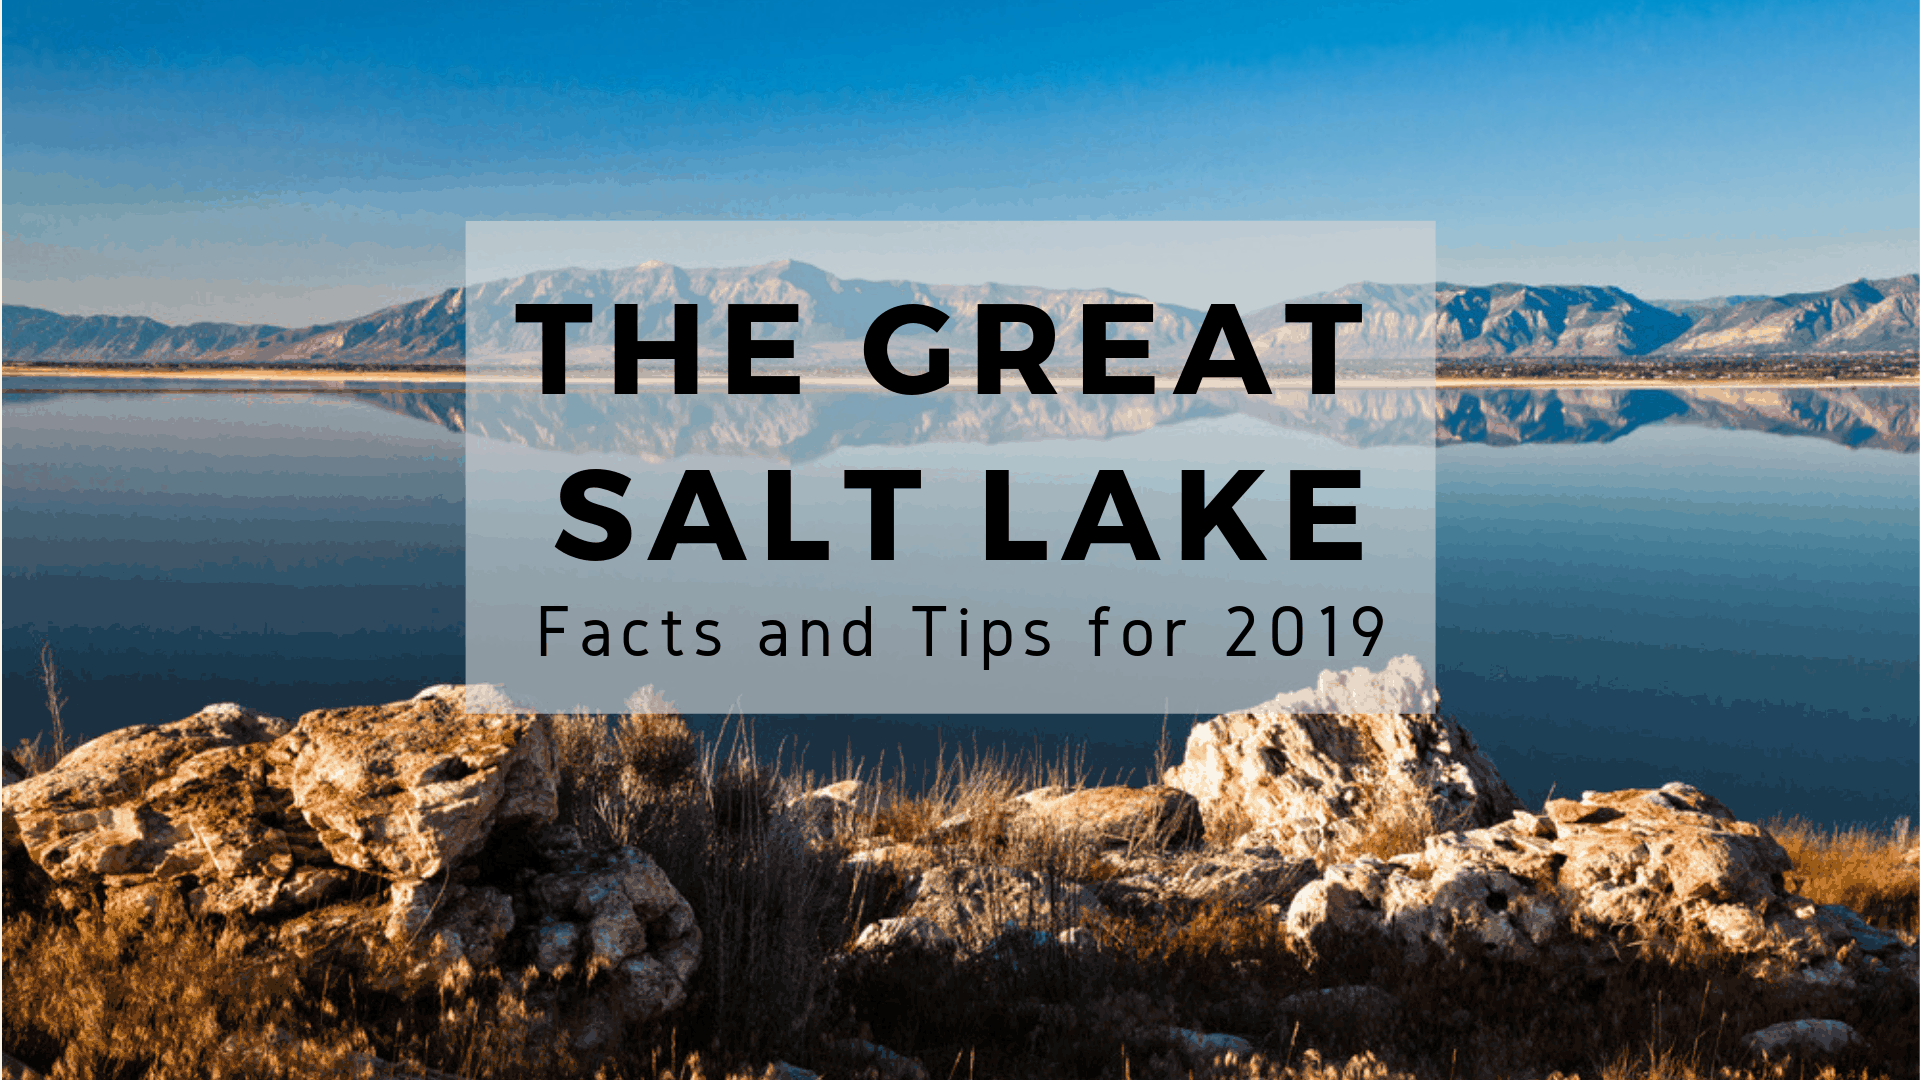 The Great Salt Lake - Facts & Tips 2019